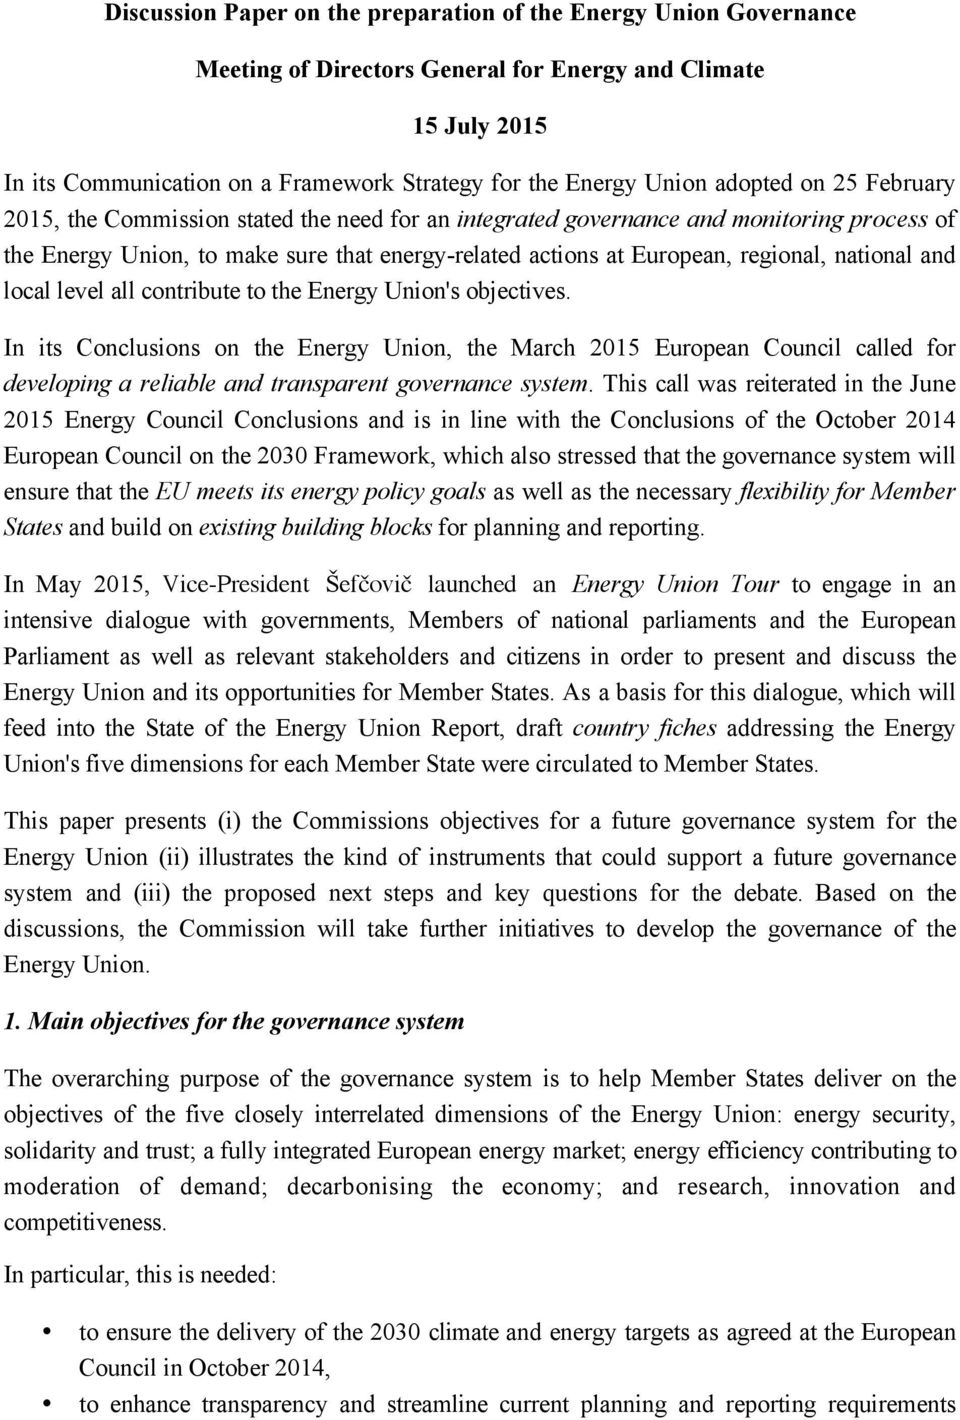 national and local level all contribute to the Energy Union's objectives.